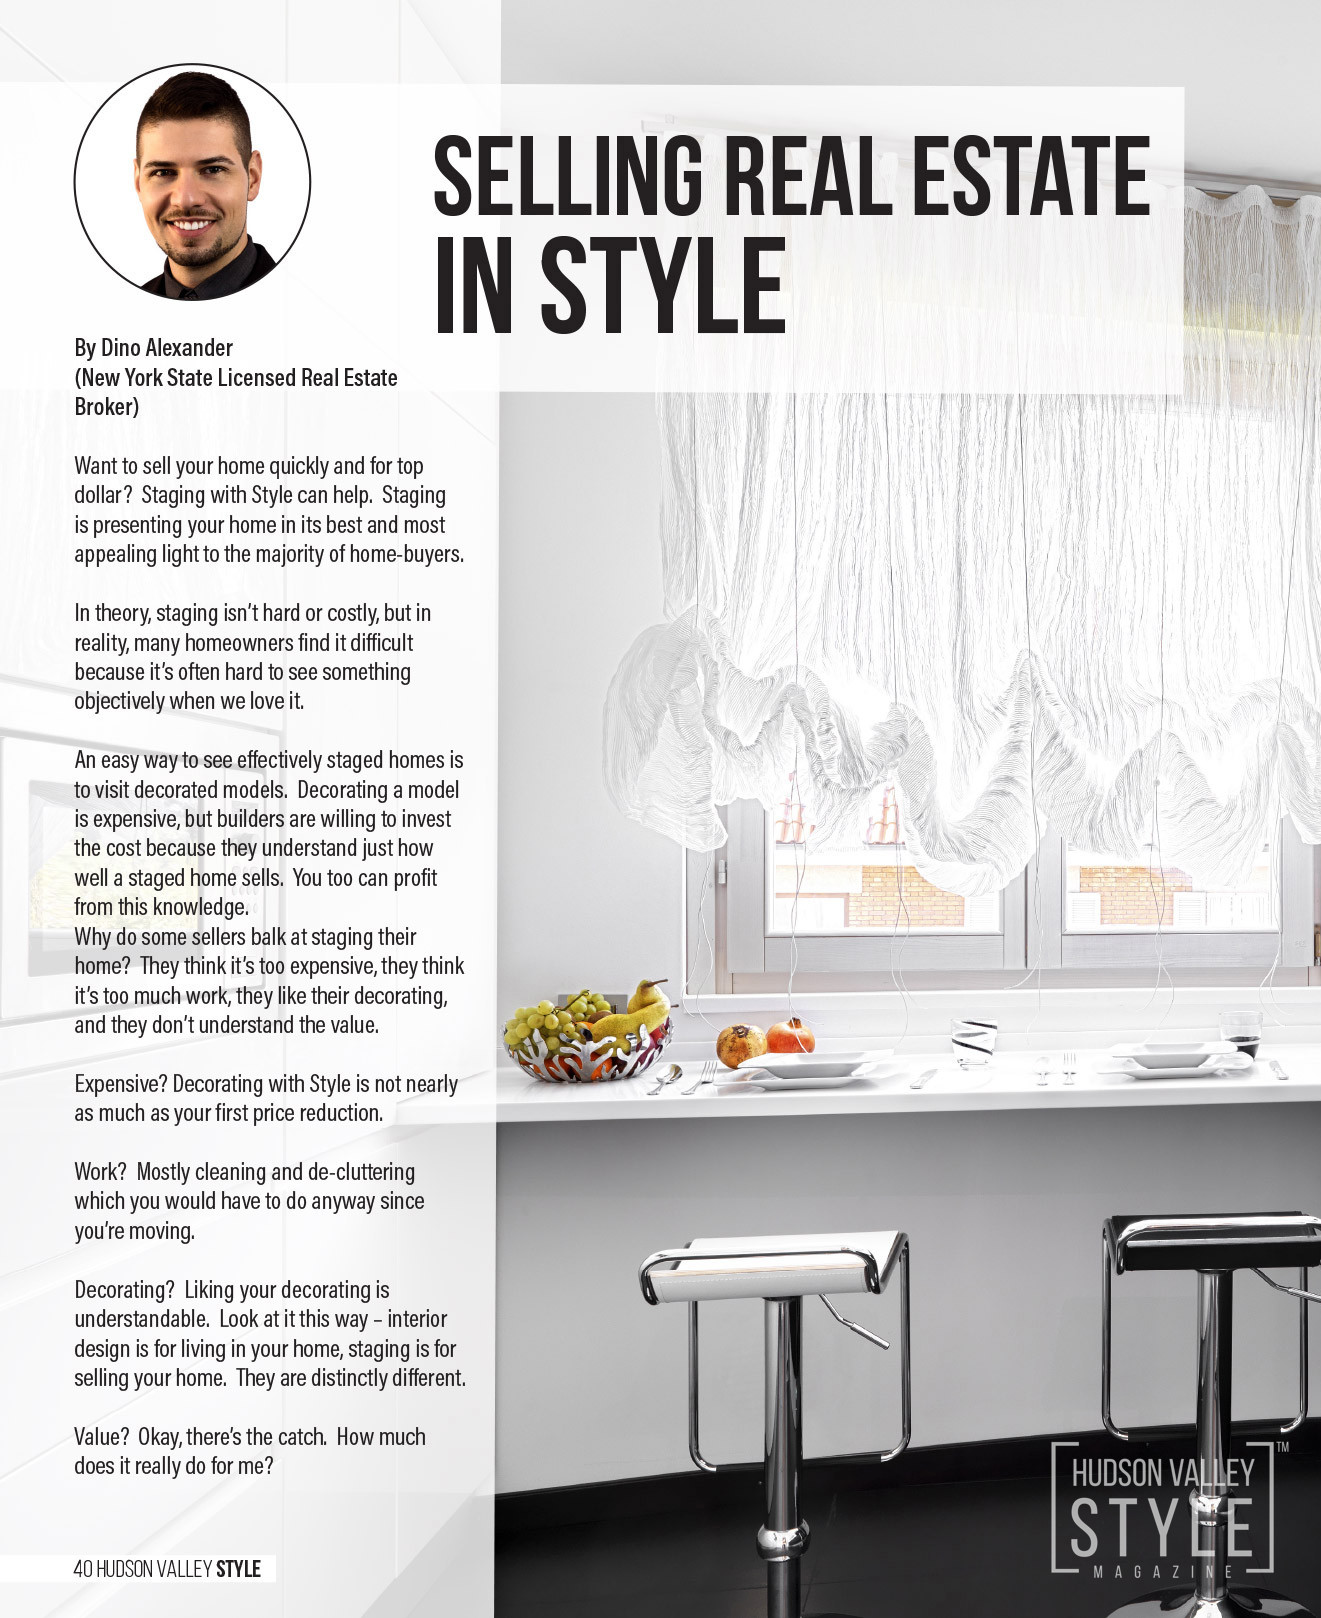 Selling Real Estate in Style by Dino Alexander - Spring 2018 - Hudson Valley Style Magazine